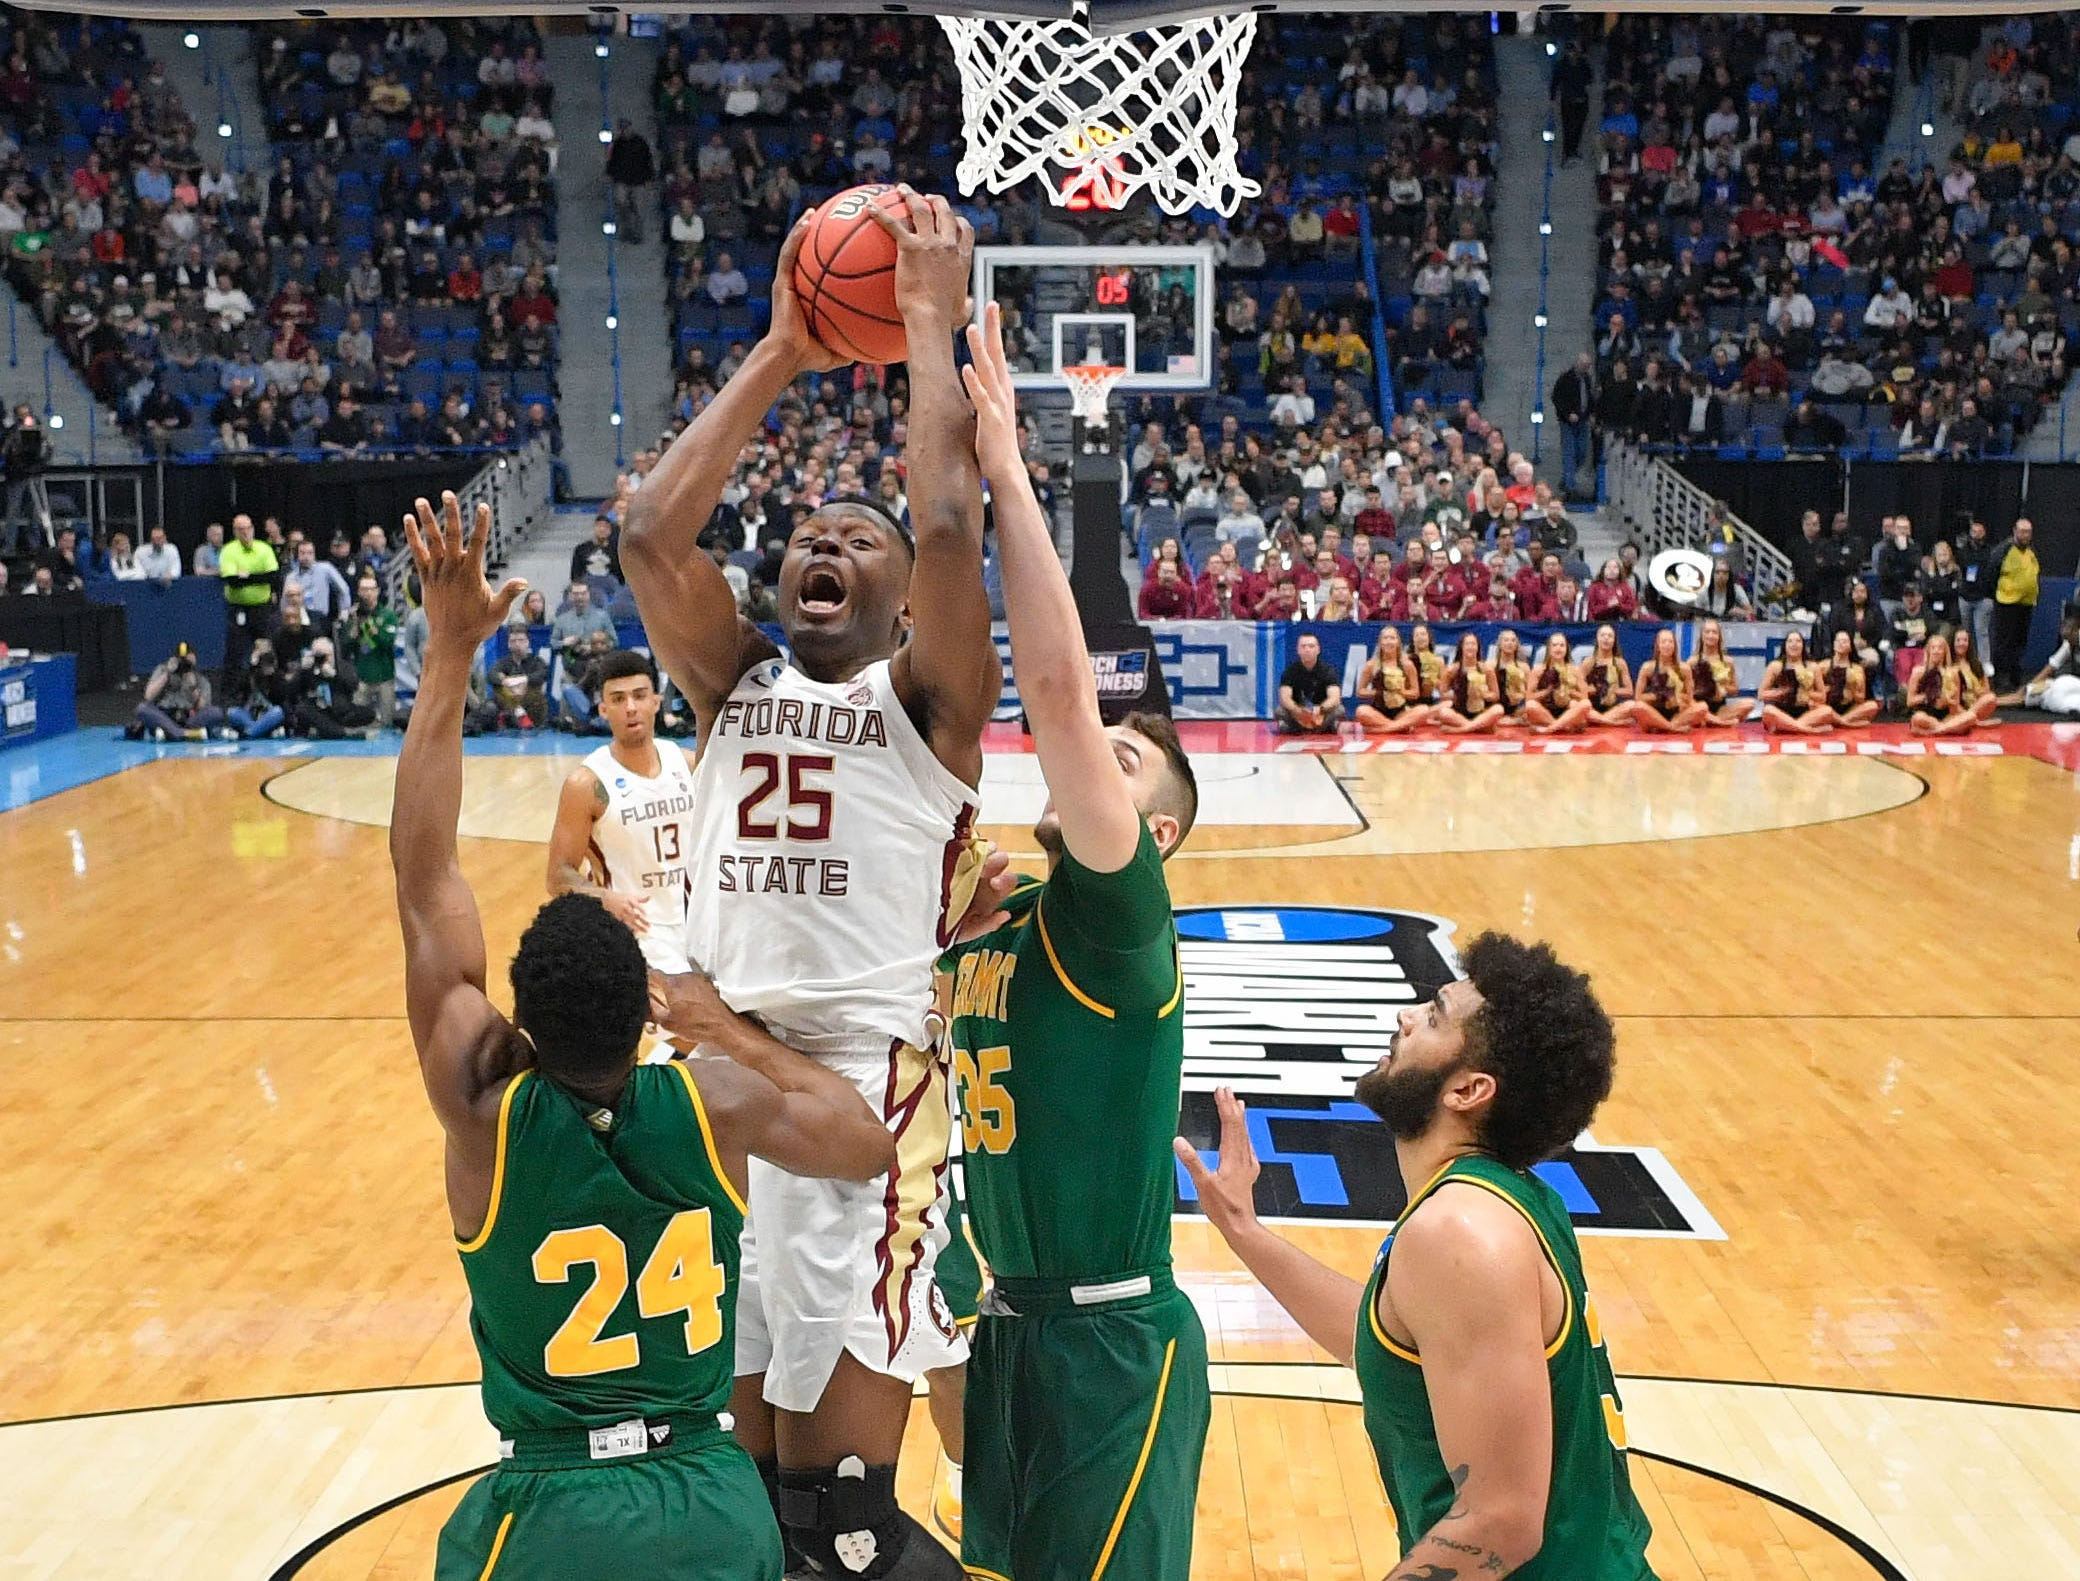 Mar 21, 2019; Hartford, CT, USA; Florida State Seminoles forward Mfiondu Kabengele (25) attempts a layup against the Vermont Catamounts during the first half of a game in the first round of the 2019 NCAA Tournament at XL Center. Mandatory Credit: David Butler II-USA TODAY Sports